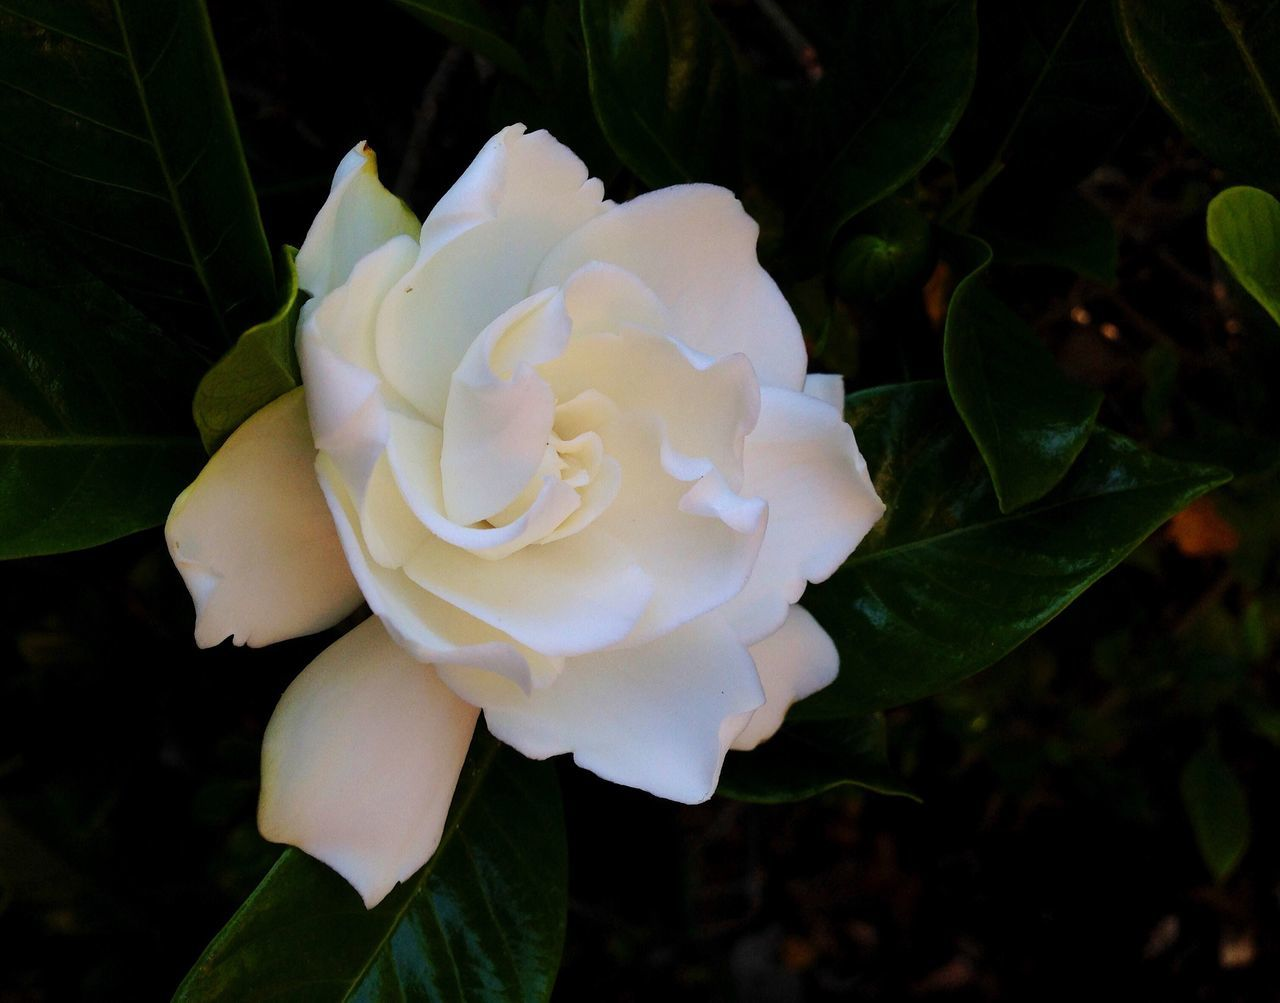 White gardenia blooming on an evergreen shrub. Gardenia White Flower Beauty In Nature Nature Freshness Flower Head Outdoors Blooming Plant No People Close-up Garden